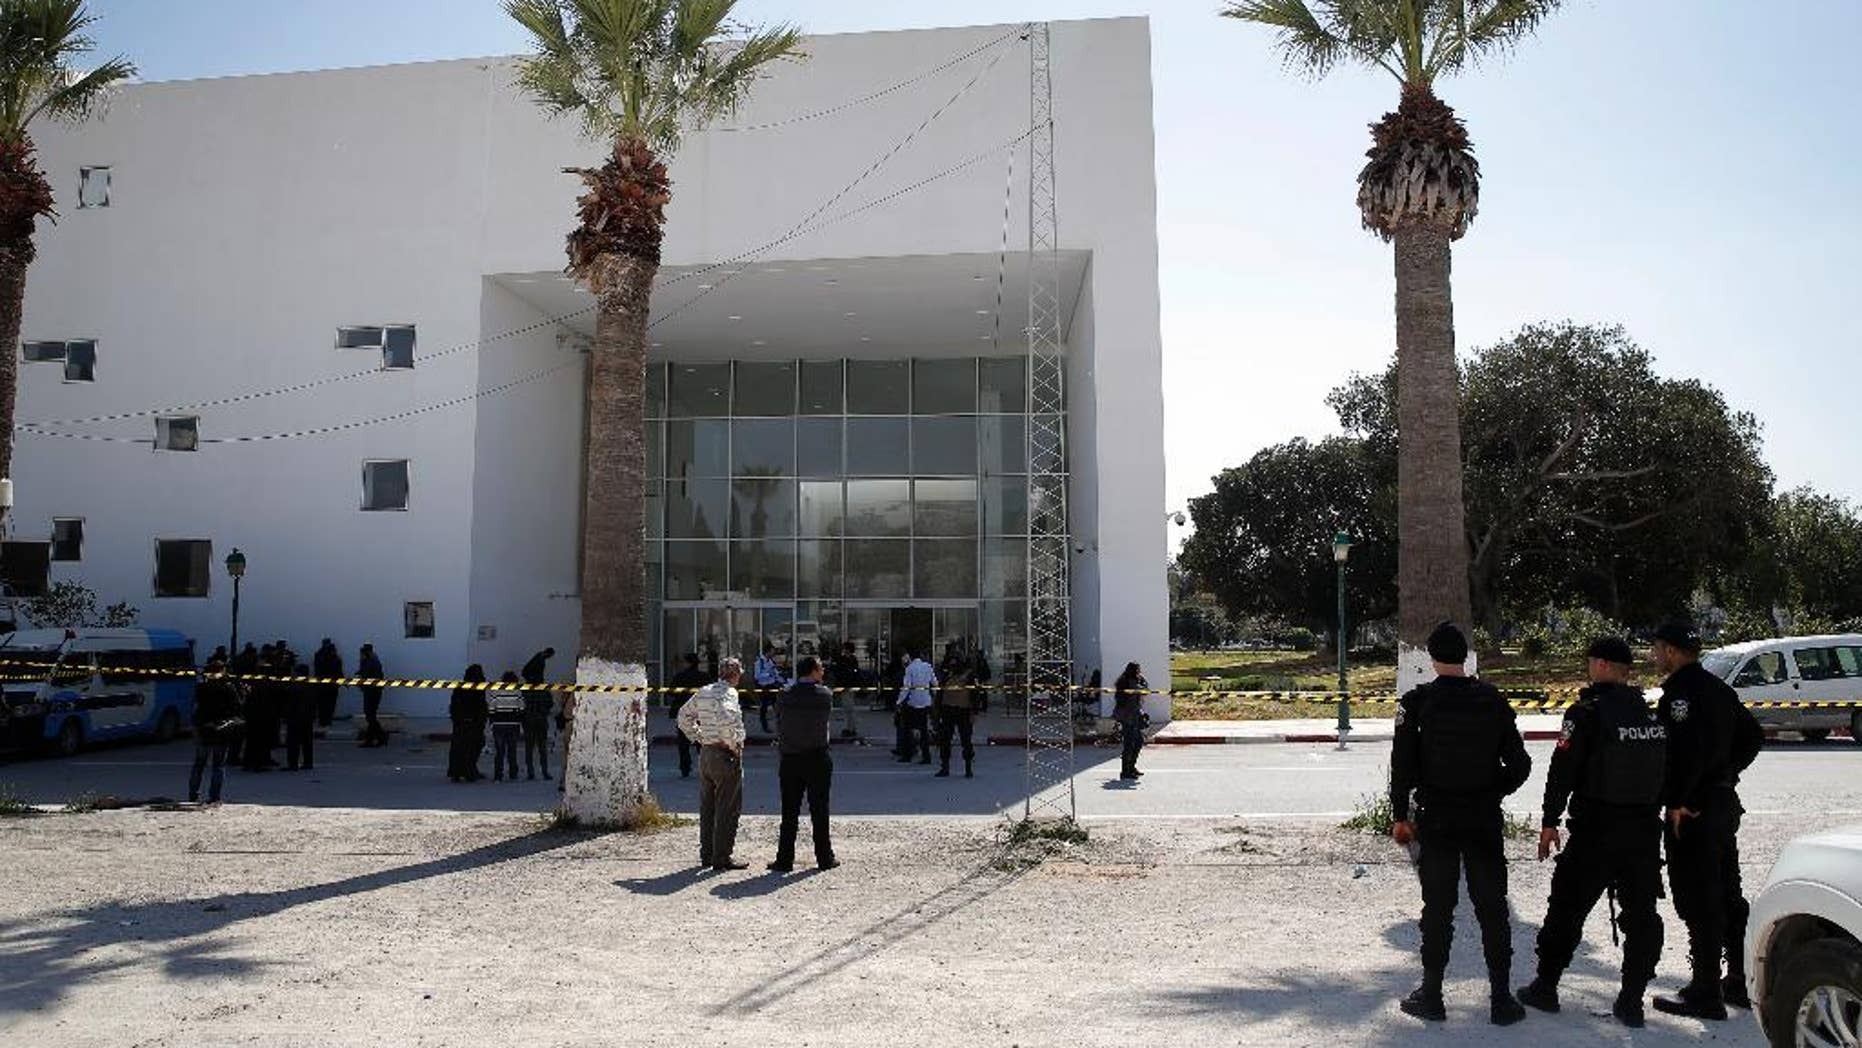 Policemen guard the entrance of the Bardo museum in Tunis, Tunisia, Thursday, March 19, 2015,  a day after gunmen opened fire killing over 20 people, mainly tourists. One of the two gunmen who killed  tourists and others at a prominent Tunisian museum was known to intelligence services, Tunisia's prime minister said Thursday. But no formal links to a particular terrorist group have been established in an attack that threatens the country's fledgling democracy and struggling tourism industry. (AP Photo/Christophe Ena)